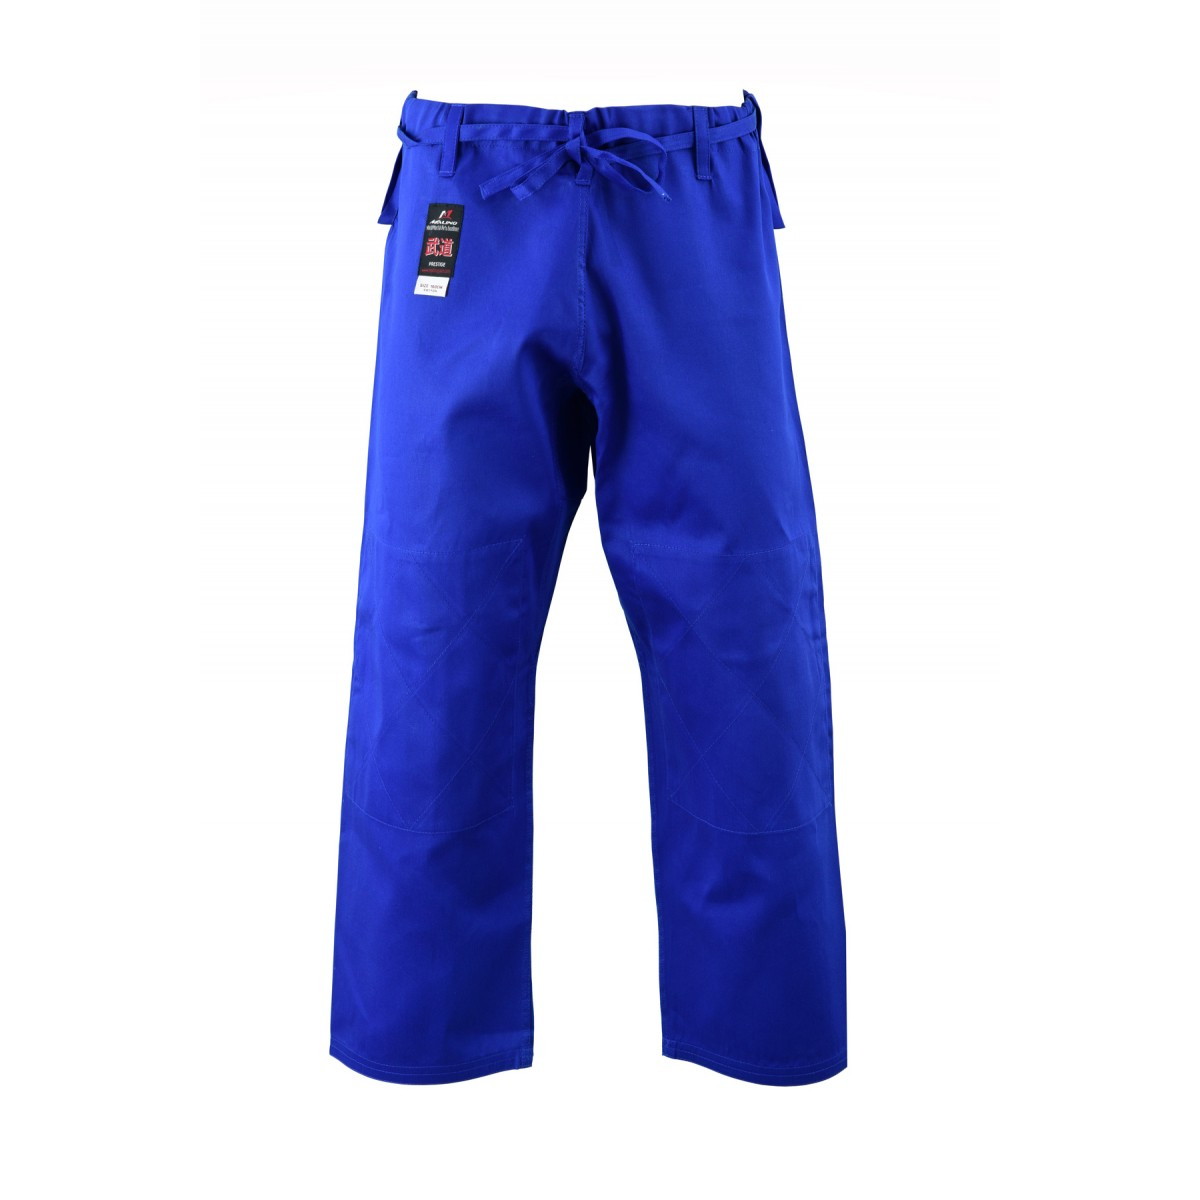 Adult Student Judo Trousers Lightweight Cotton Blue - 7oz